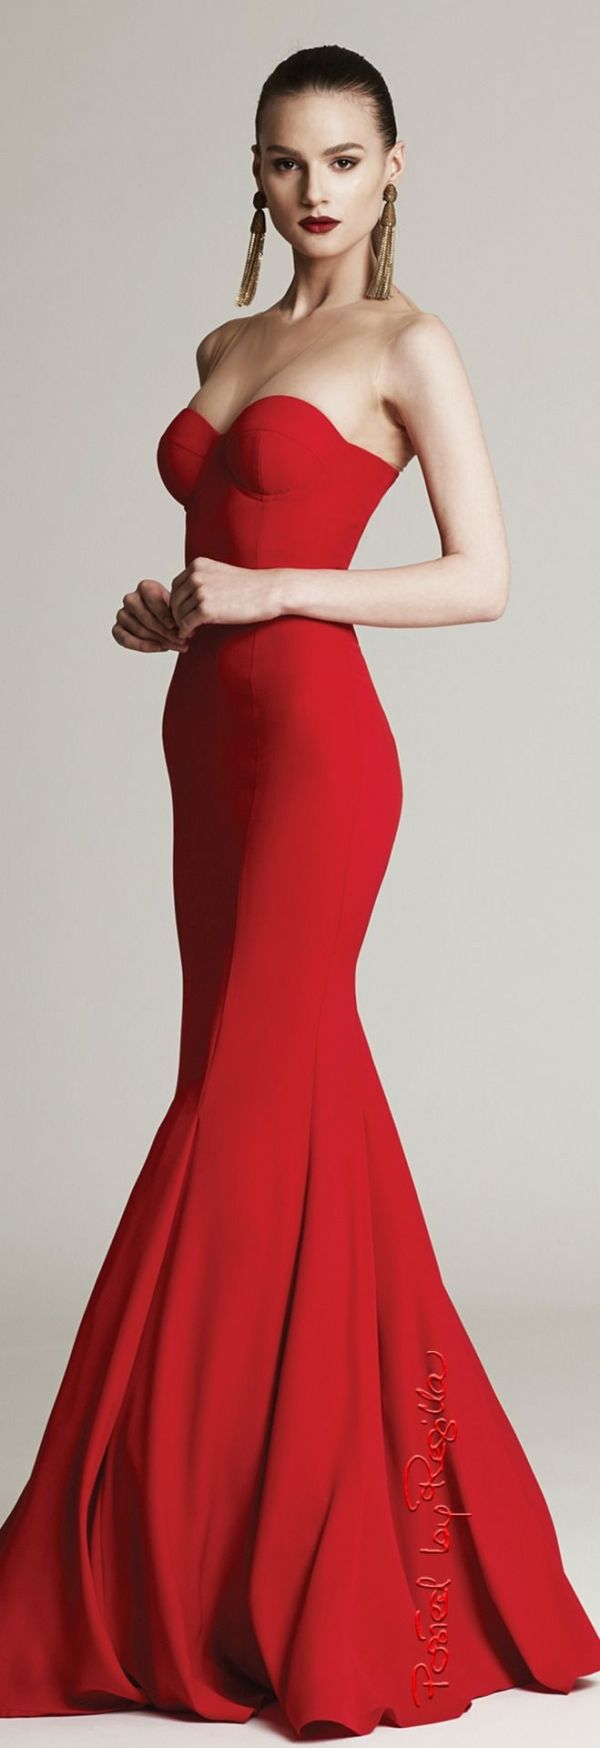 Cristina Săvulescu ~ Fall Red Strapless Mermaid Gown 2015/16 by ...